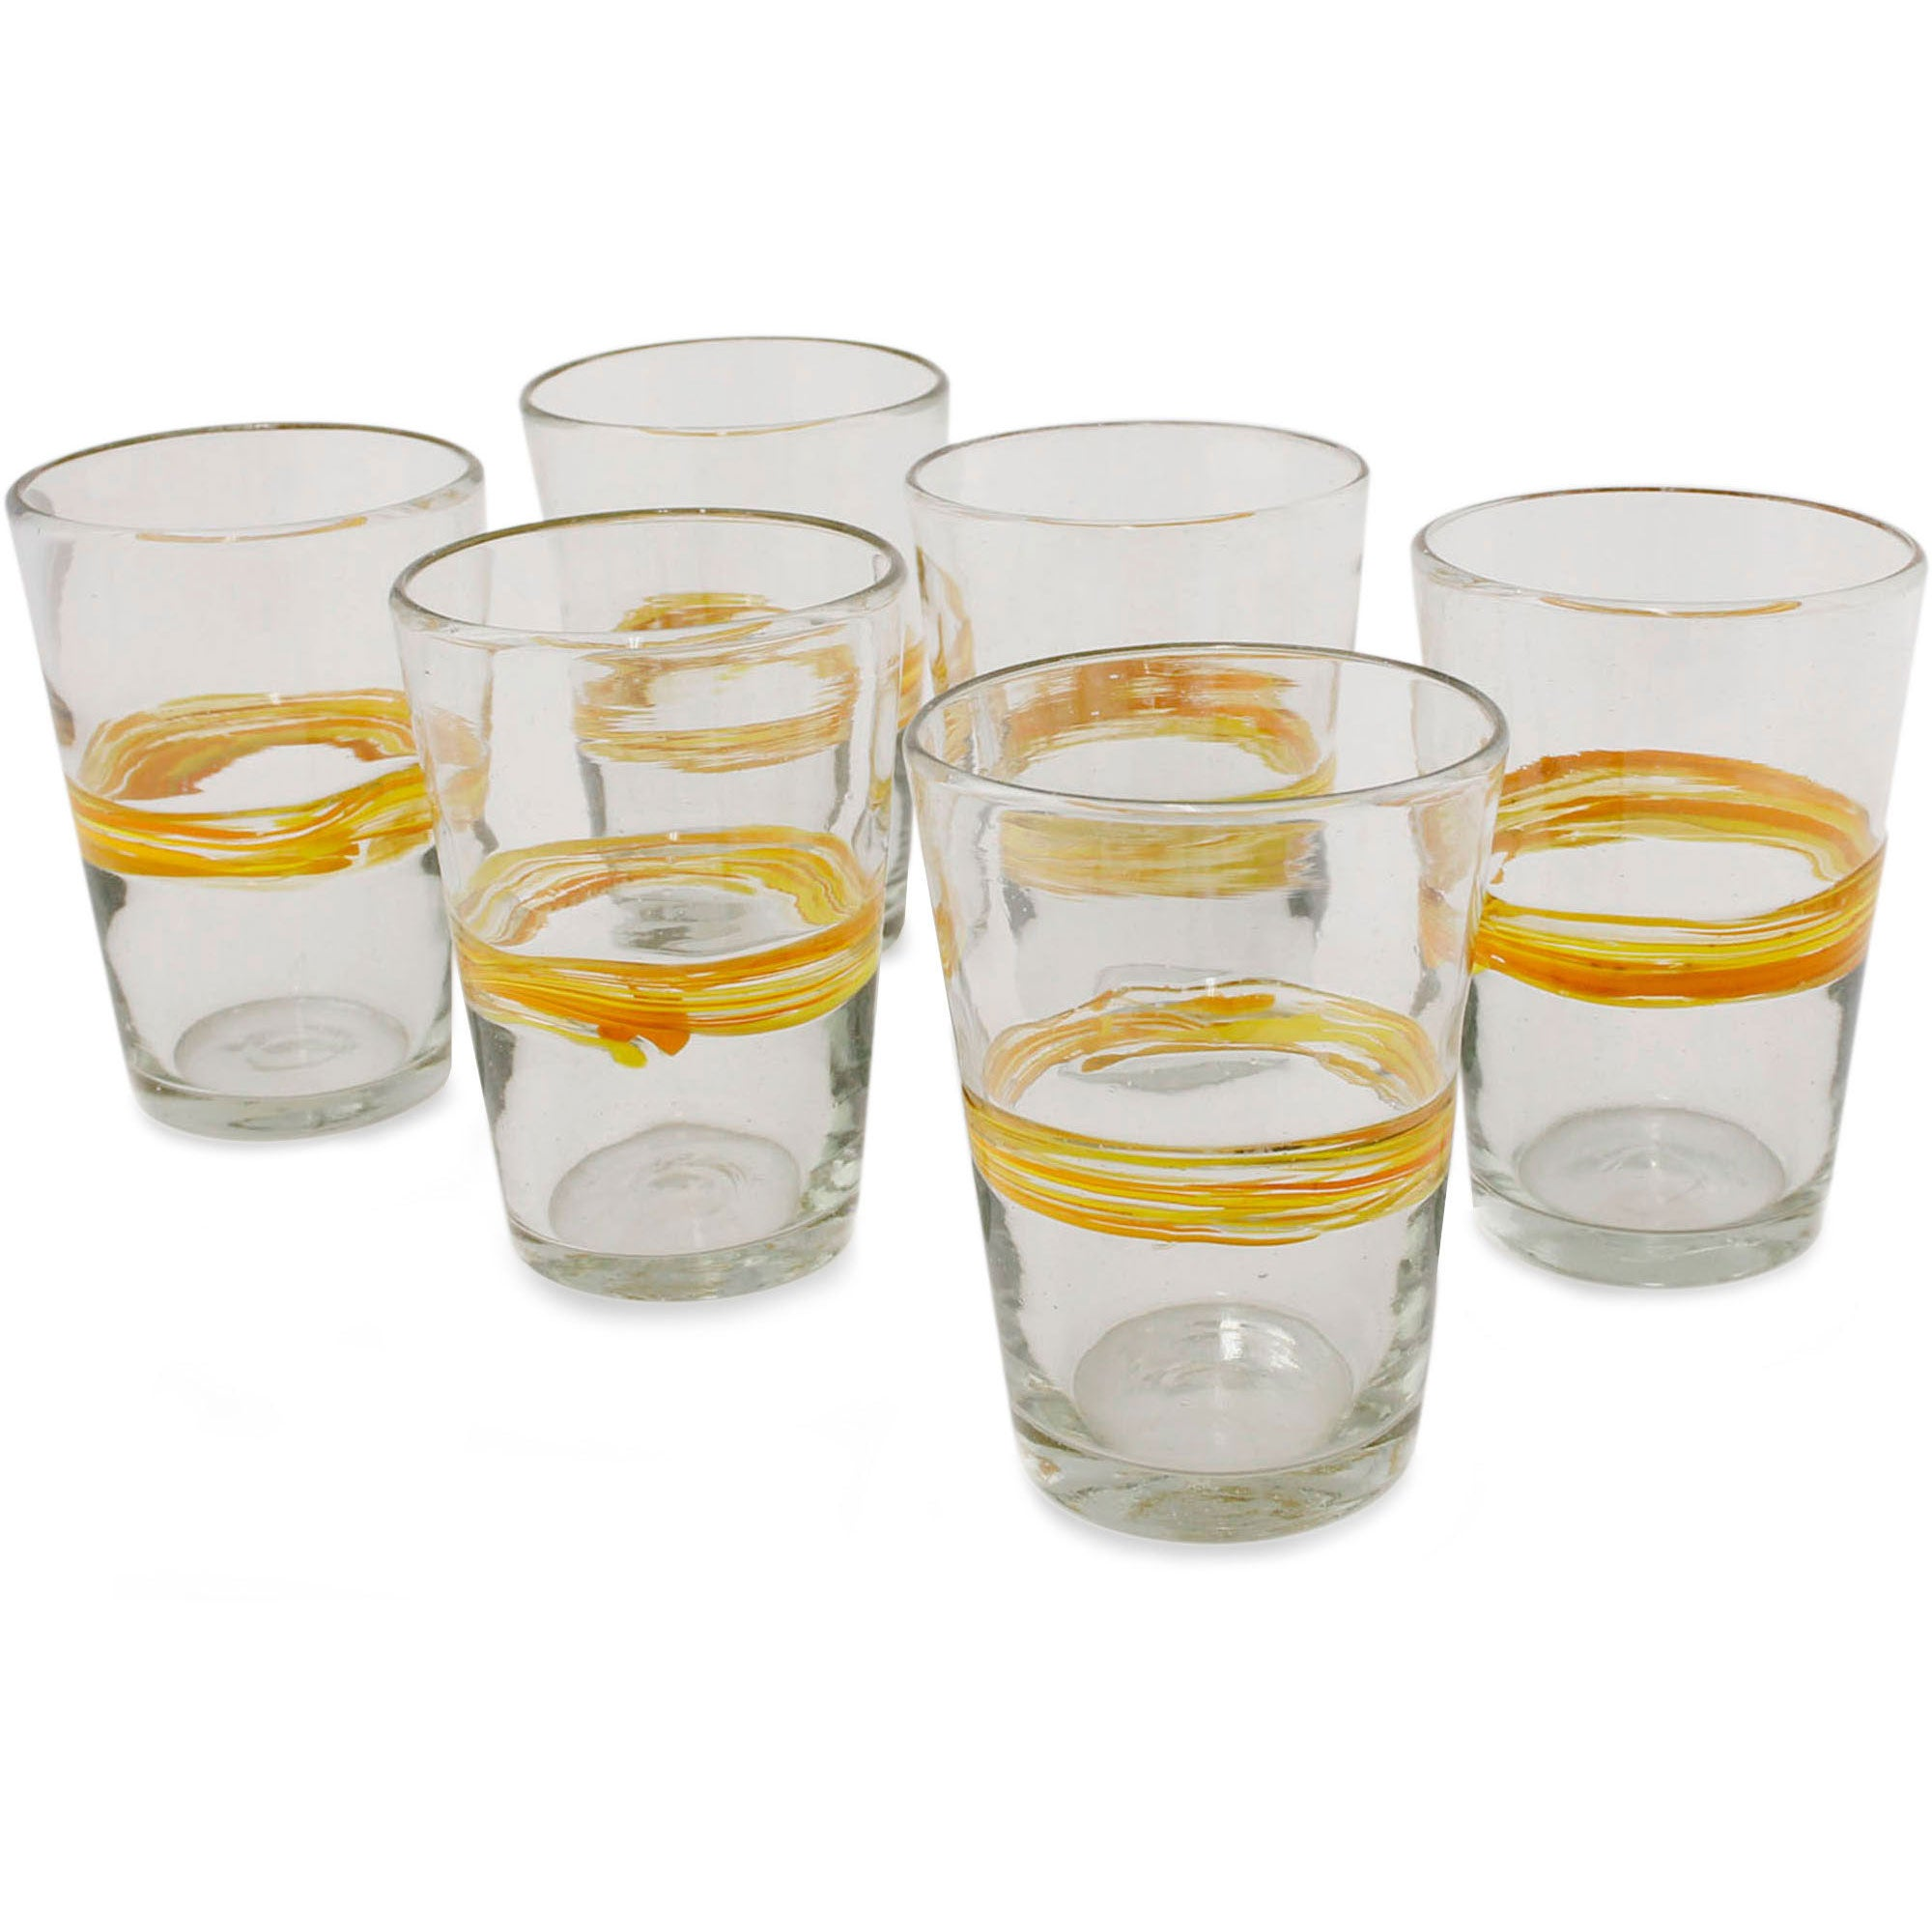 Ribbon of Sunshine Tumblers Clear Orange Band Set of Six Barware Tableware Hostess Gift Handblown Drinking Glasses (Mexico)